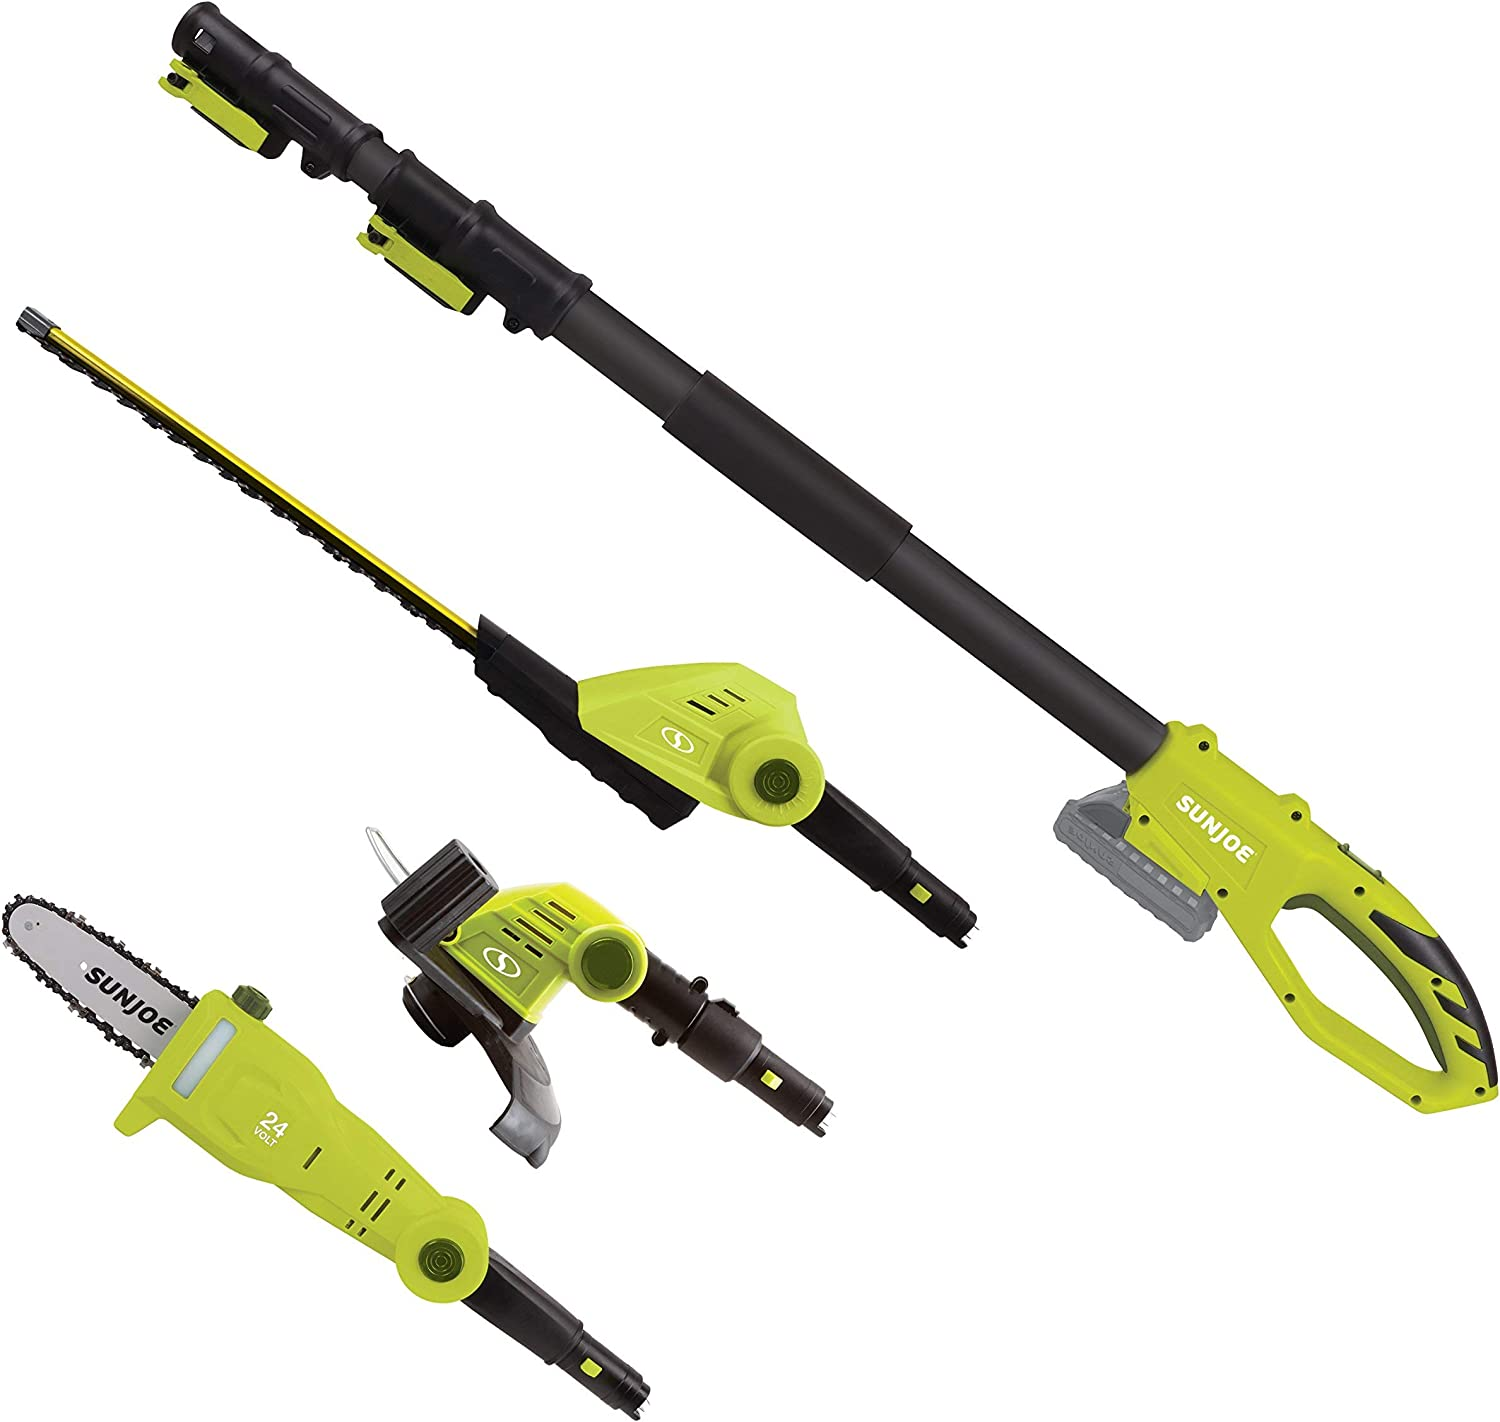 Sun Joe GTS4002C Cordless Lawn Care System-Hedge Trimmer, Pole Saw, Grass Trimmer Renewed